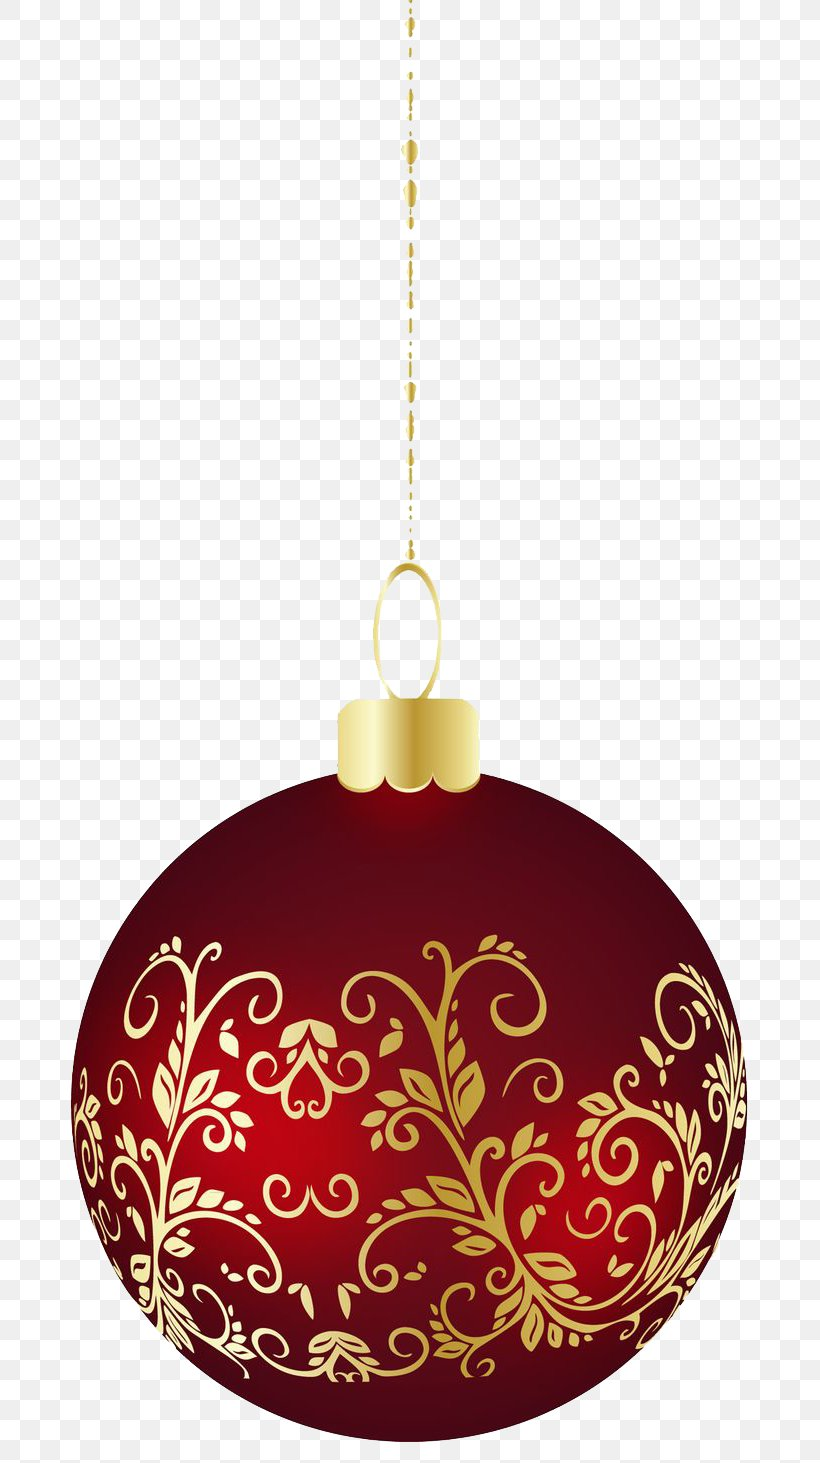 Christmas Ornament Christmas Decoration Clip Art, PNG, 736x1463px, Christmas Ornament, Artificial Christmas Tree, Christmas, Christmas Decoration, Christmas Tree Download Free